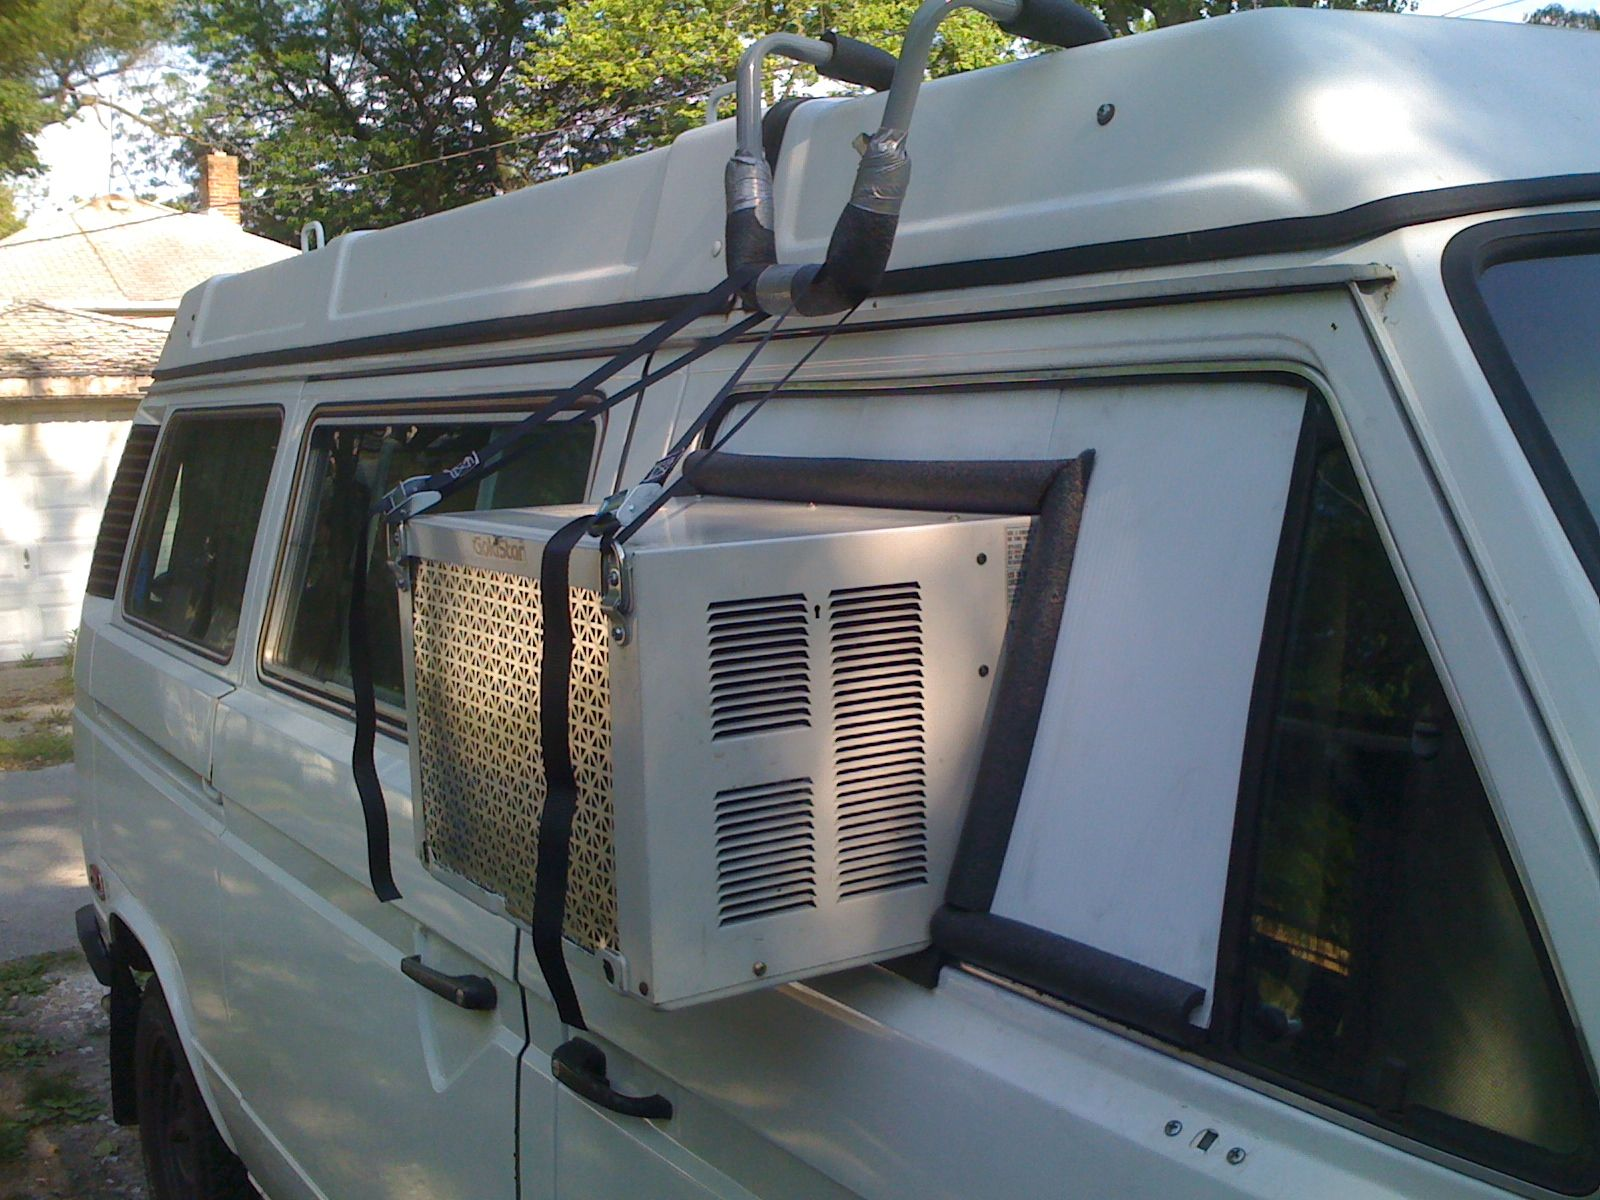 minivan camping air conditioning Minivan Camping